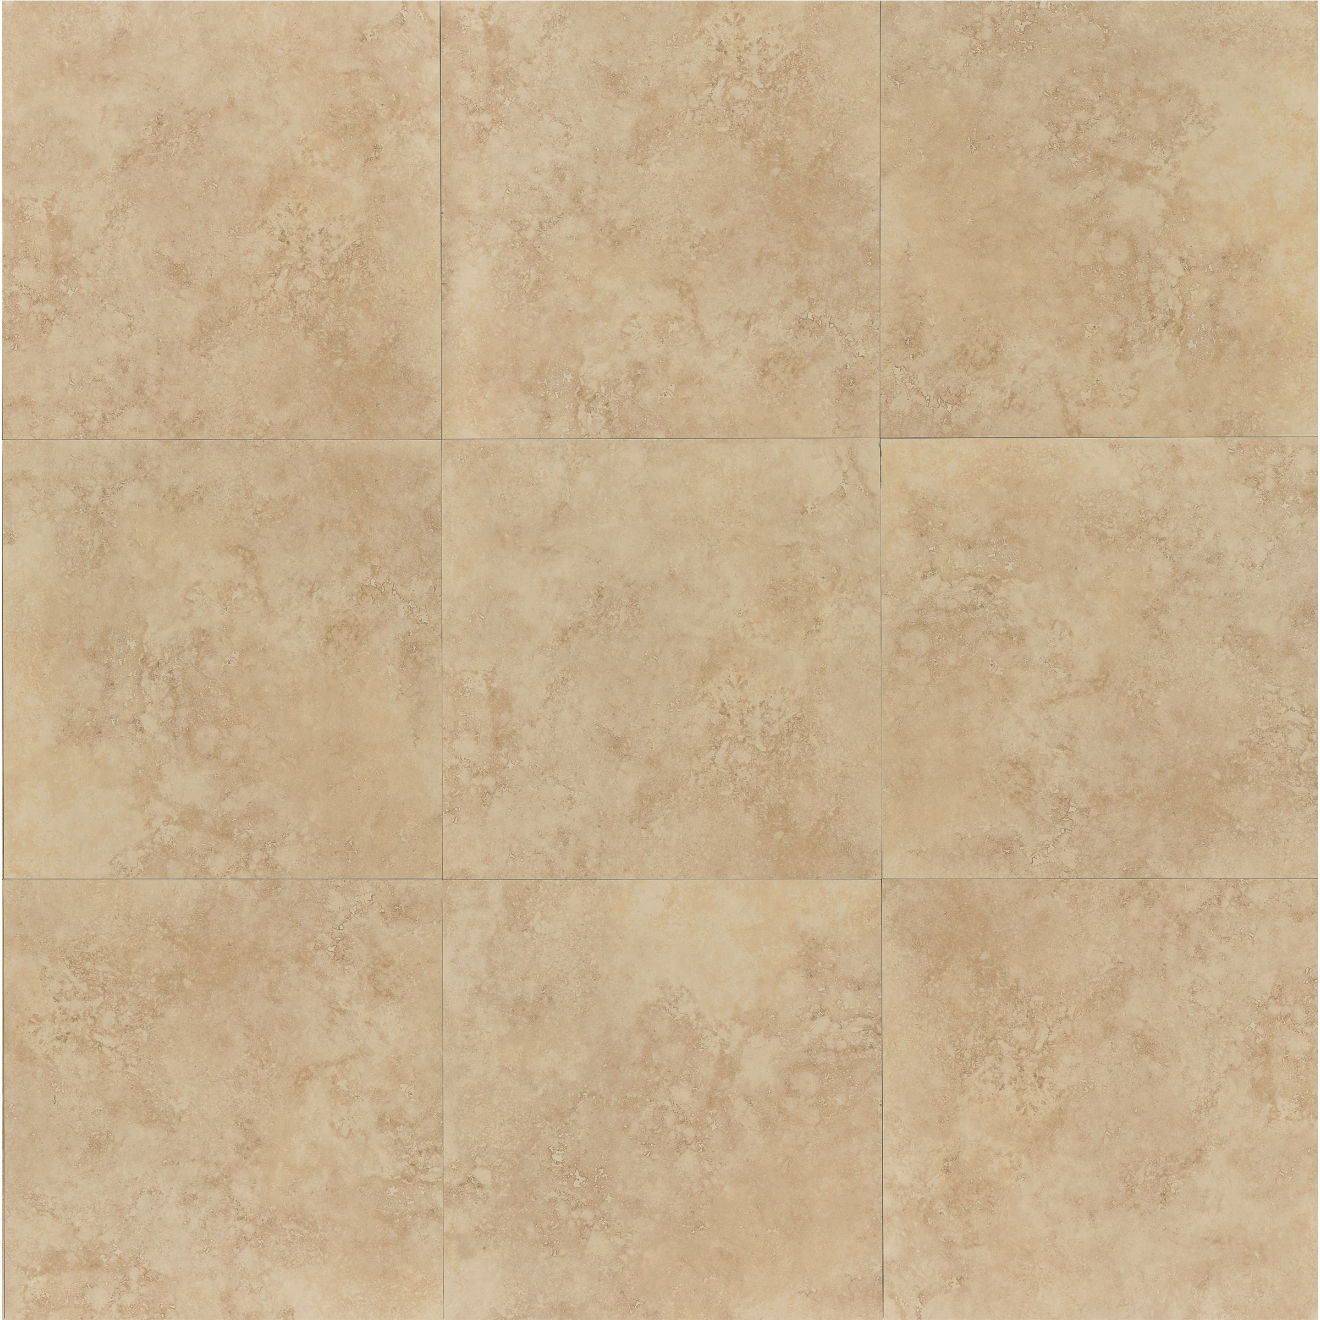 roma 12 x 12 x 3 8 floor and wall tile in beige